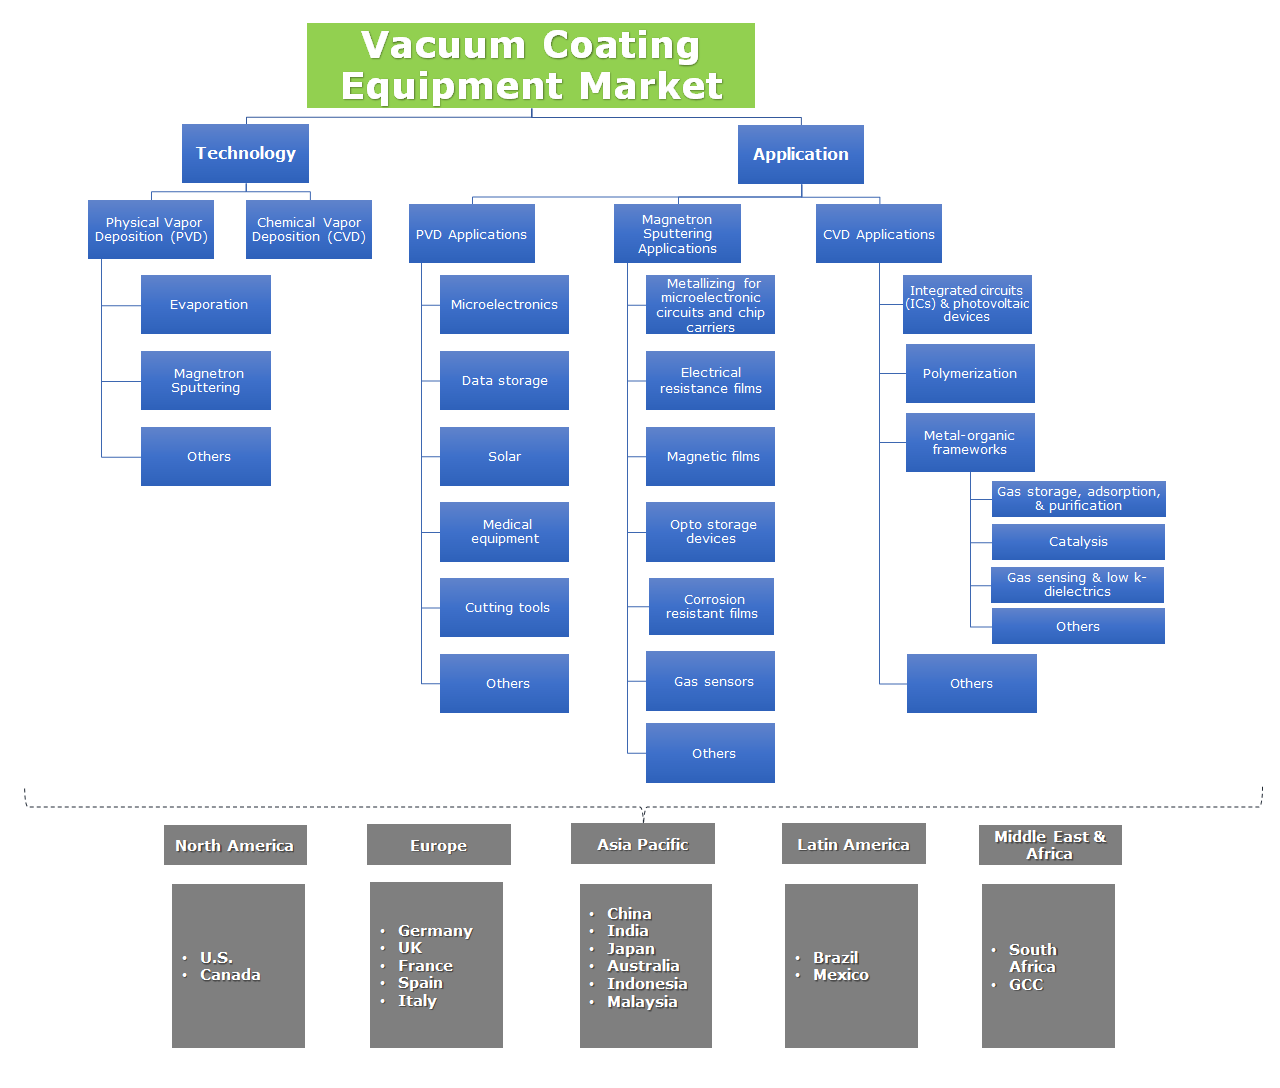 Vacuum Coating Equipment Market Segmentation